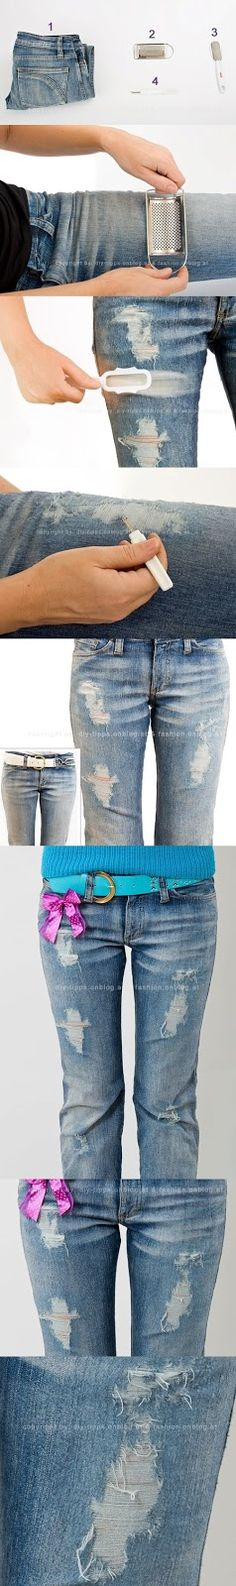 DIY and Crafts picture |  Hahaha!!! Just in case I ever want to distress jeans